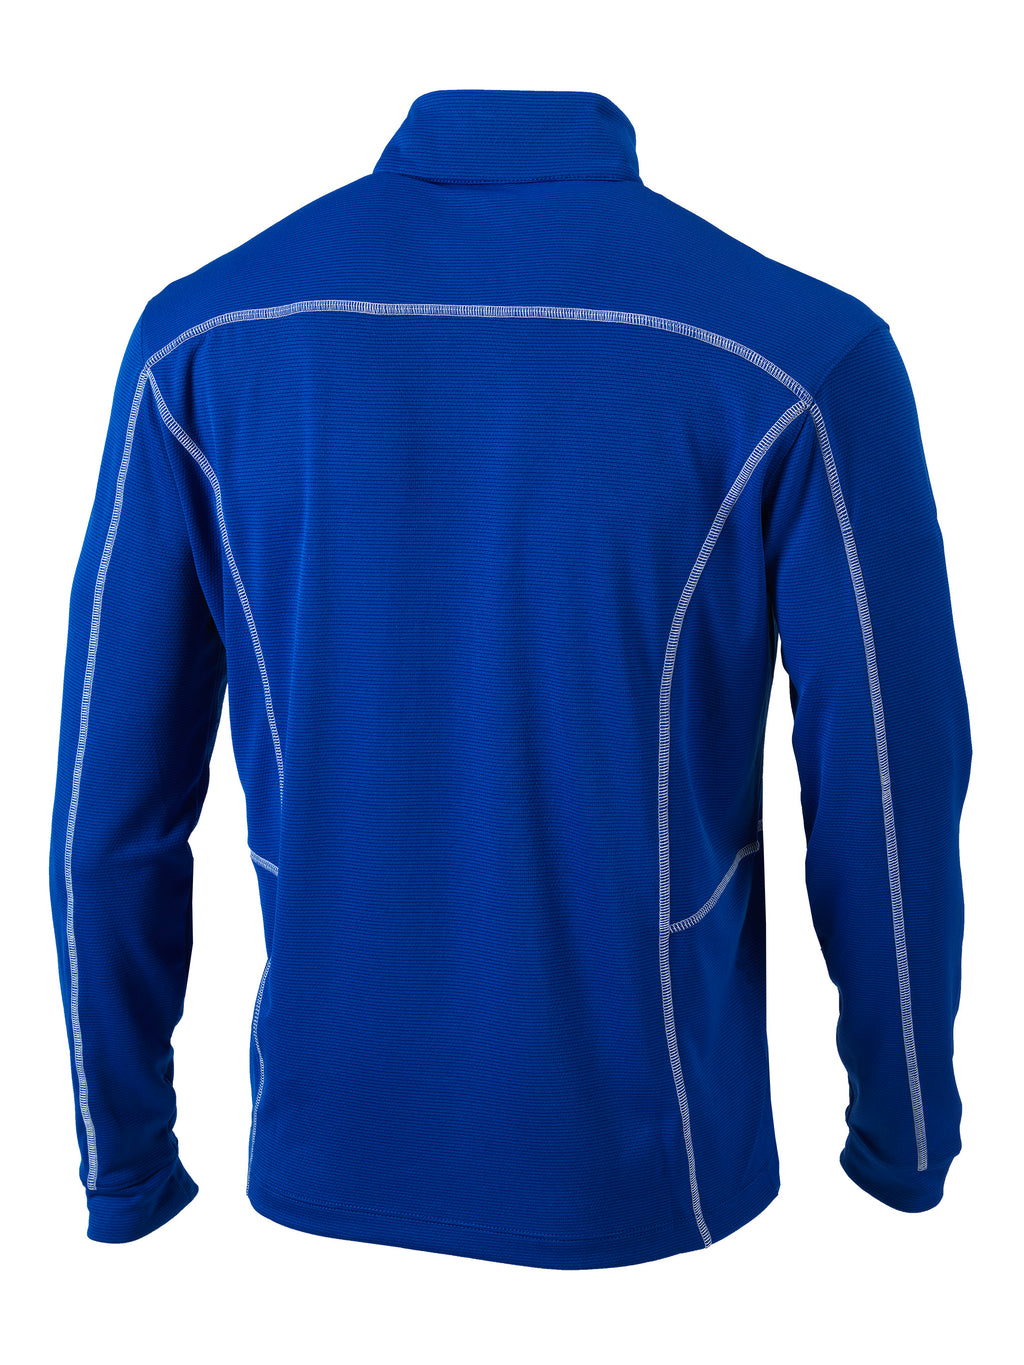 KHP-COLUMBIA OMNI-WICK SHOTGUN L/S GOLF SHIRT